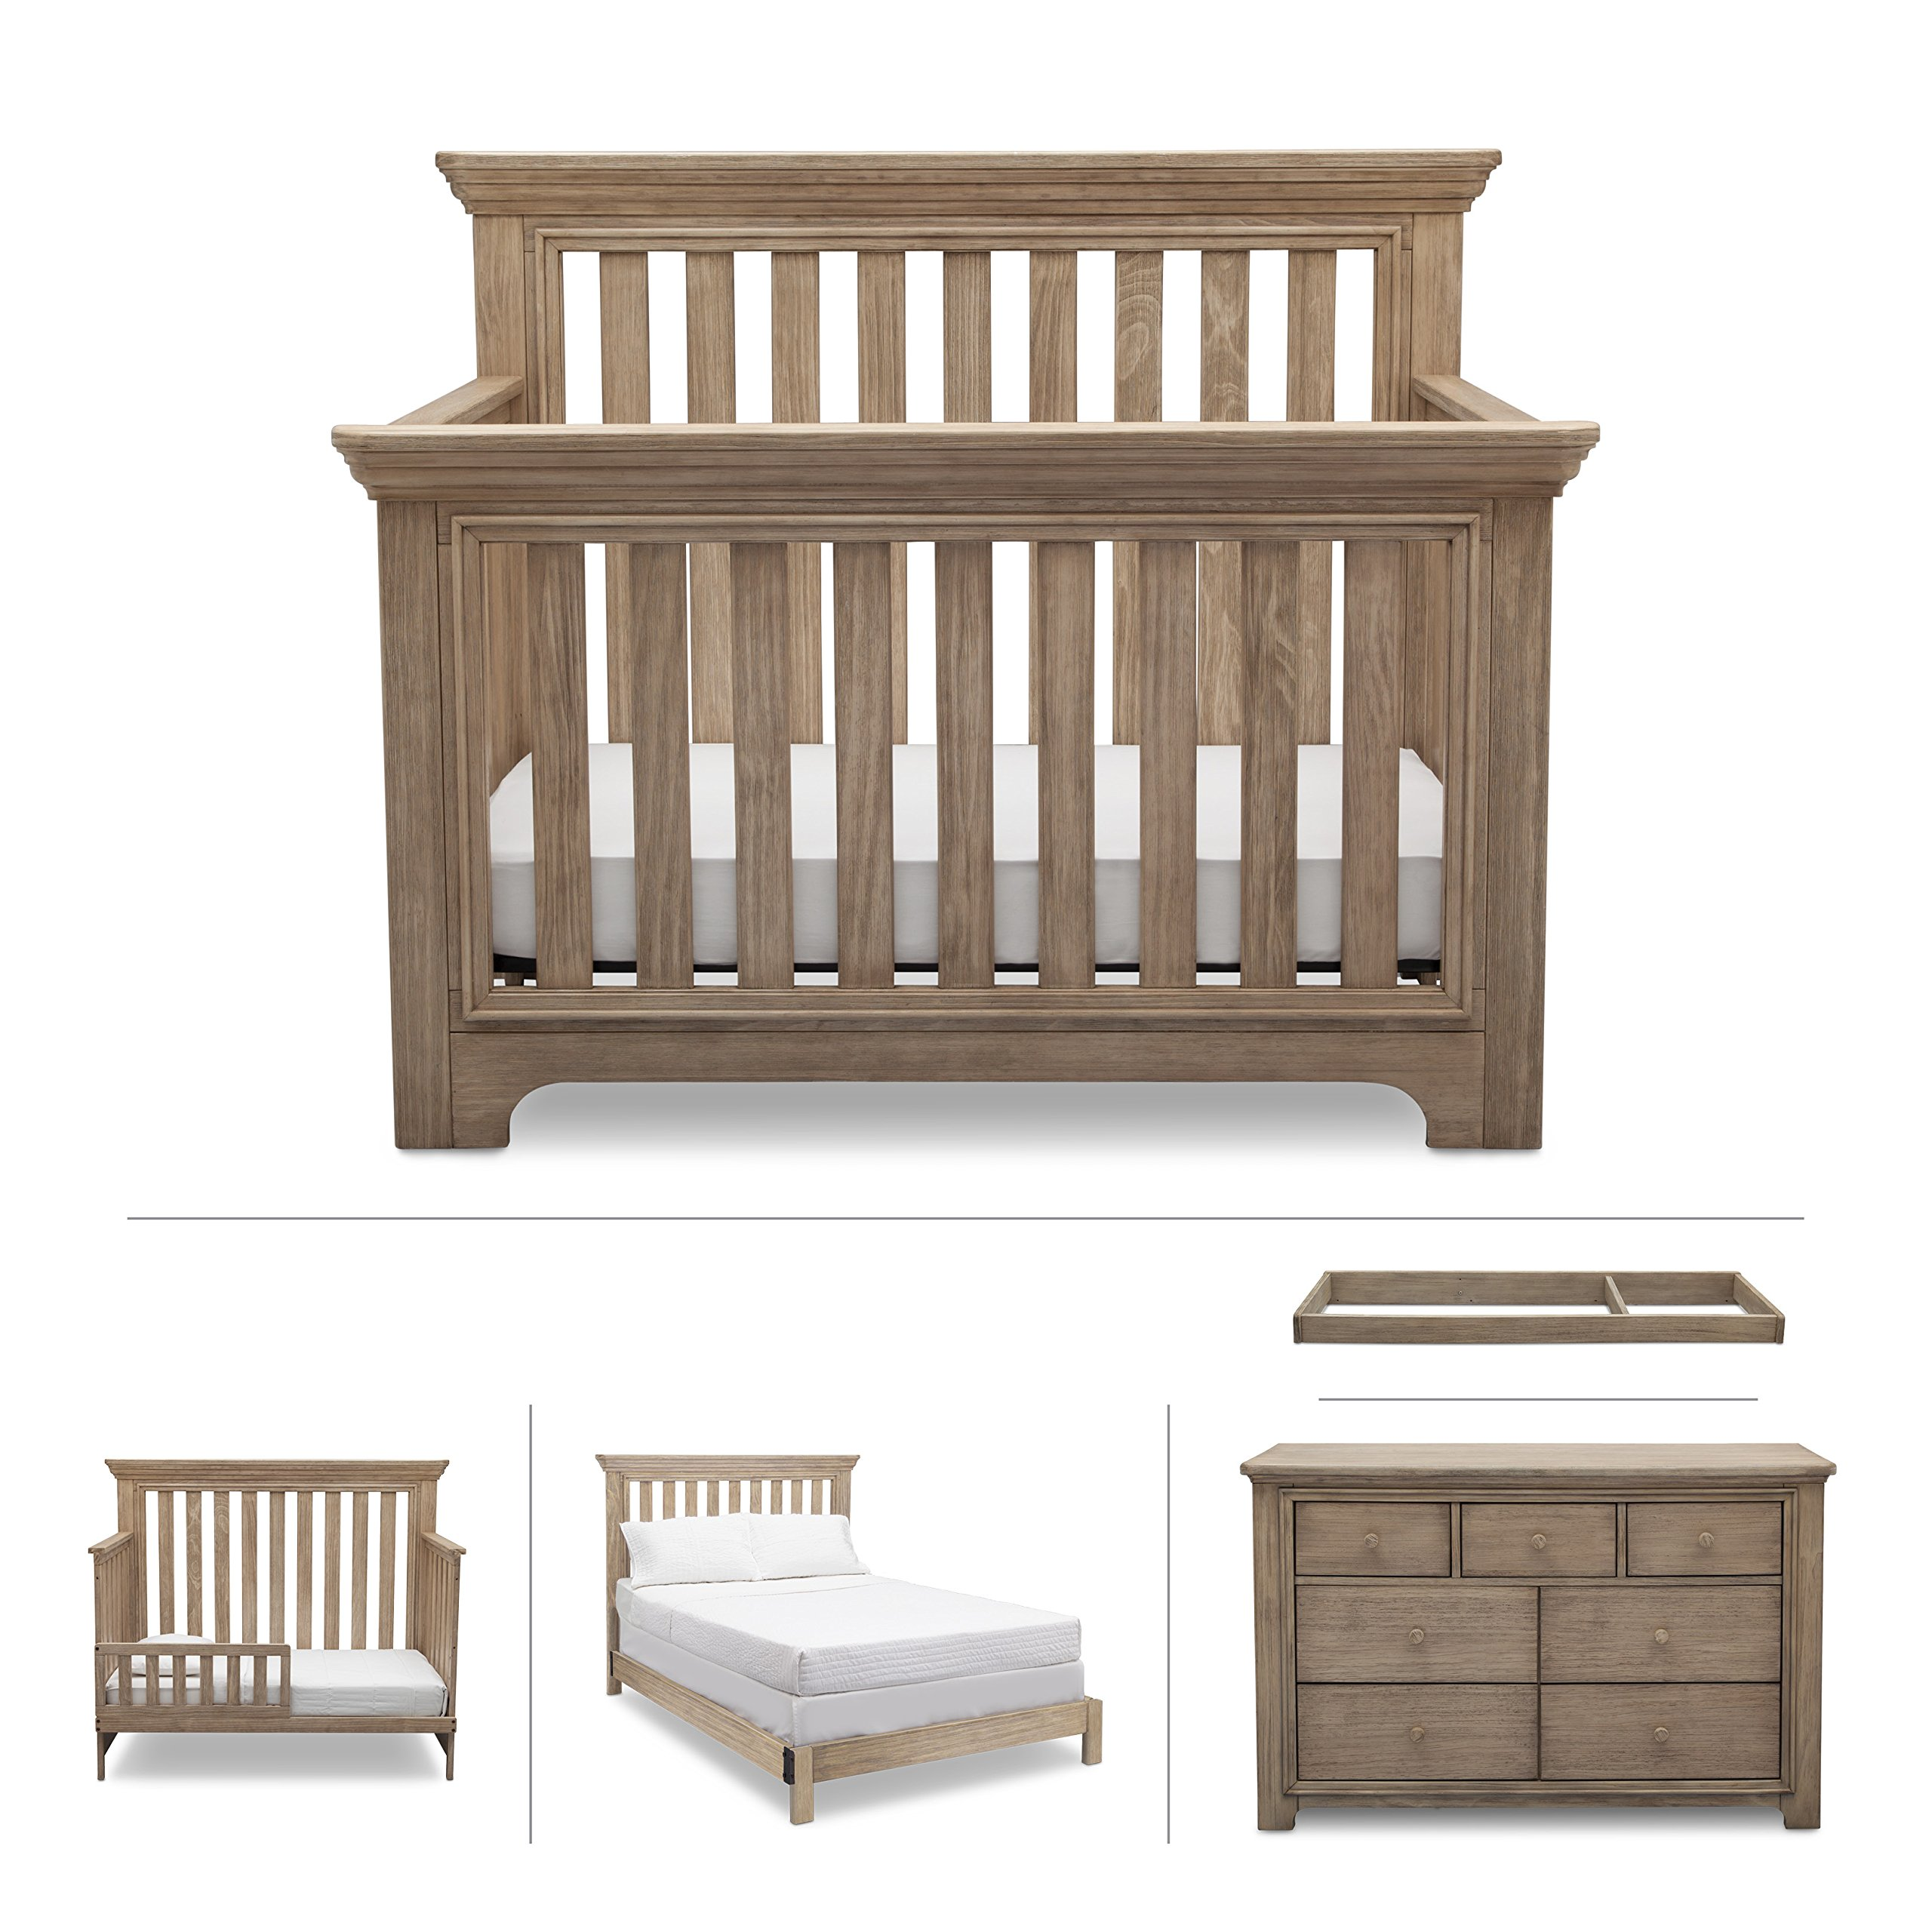 Nursery Furniture Set, 5-Piece - Serta Kids (Convertible Crib, Dresser, Changing Top, Toddler Guardrail, Full Size Conversion), Langley, Rustic Whitewash